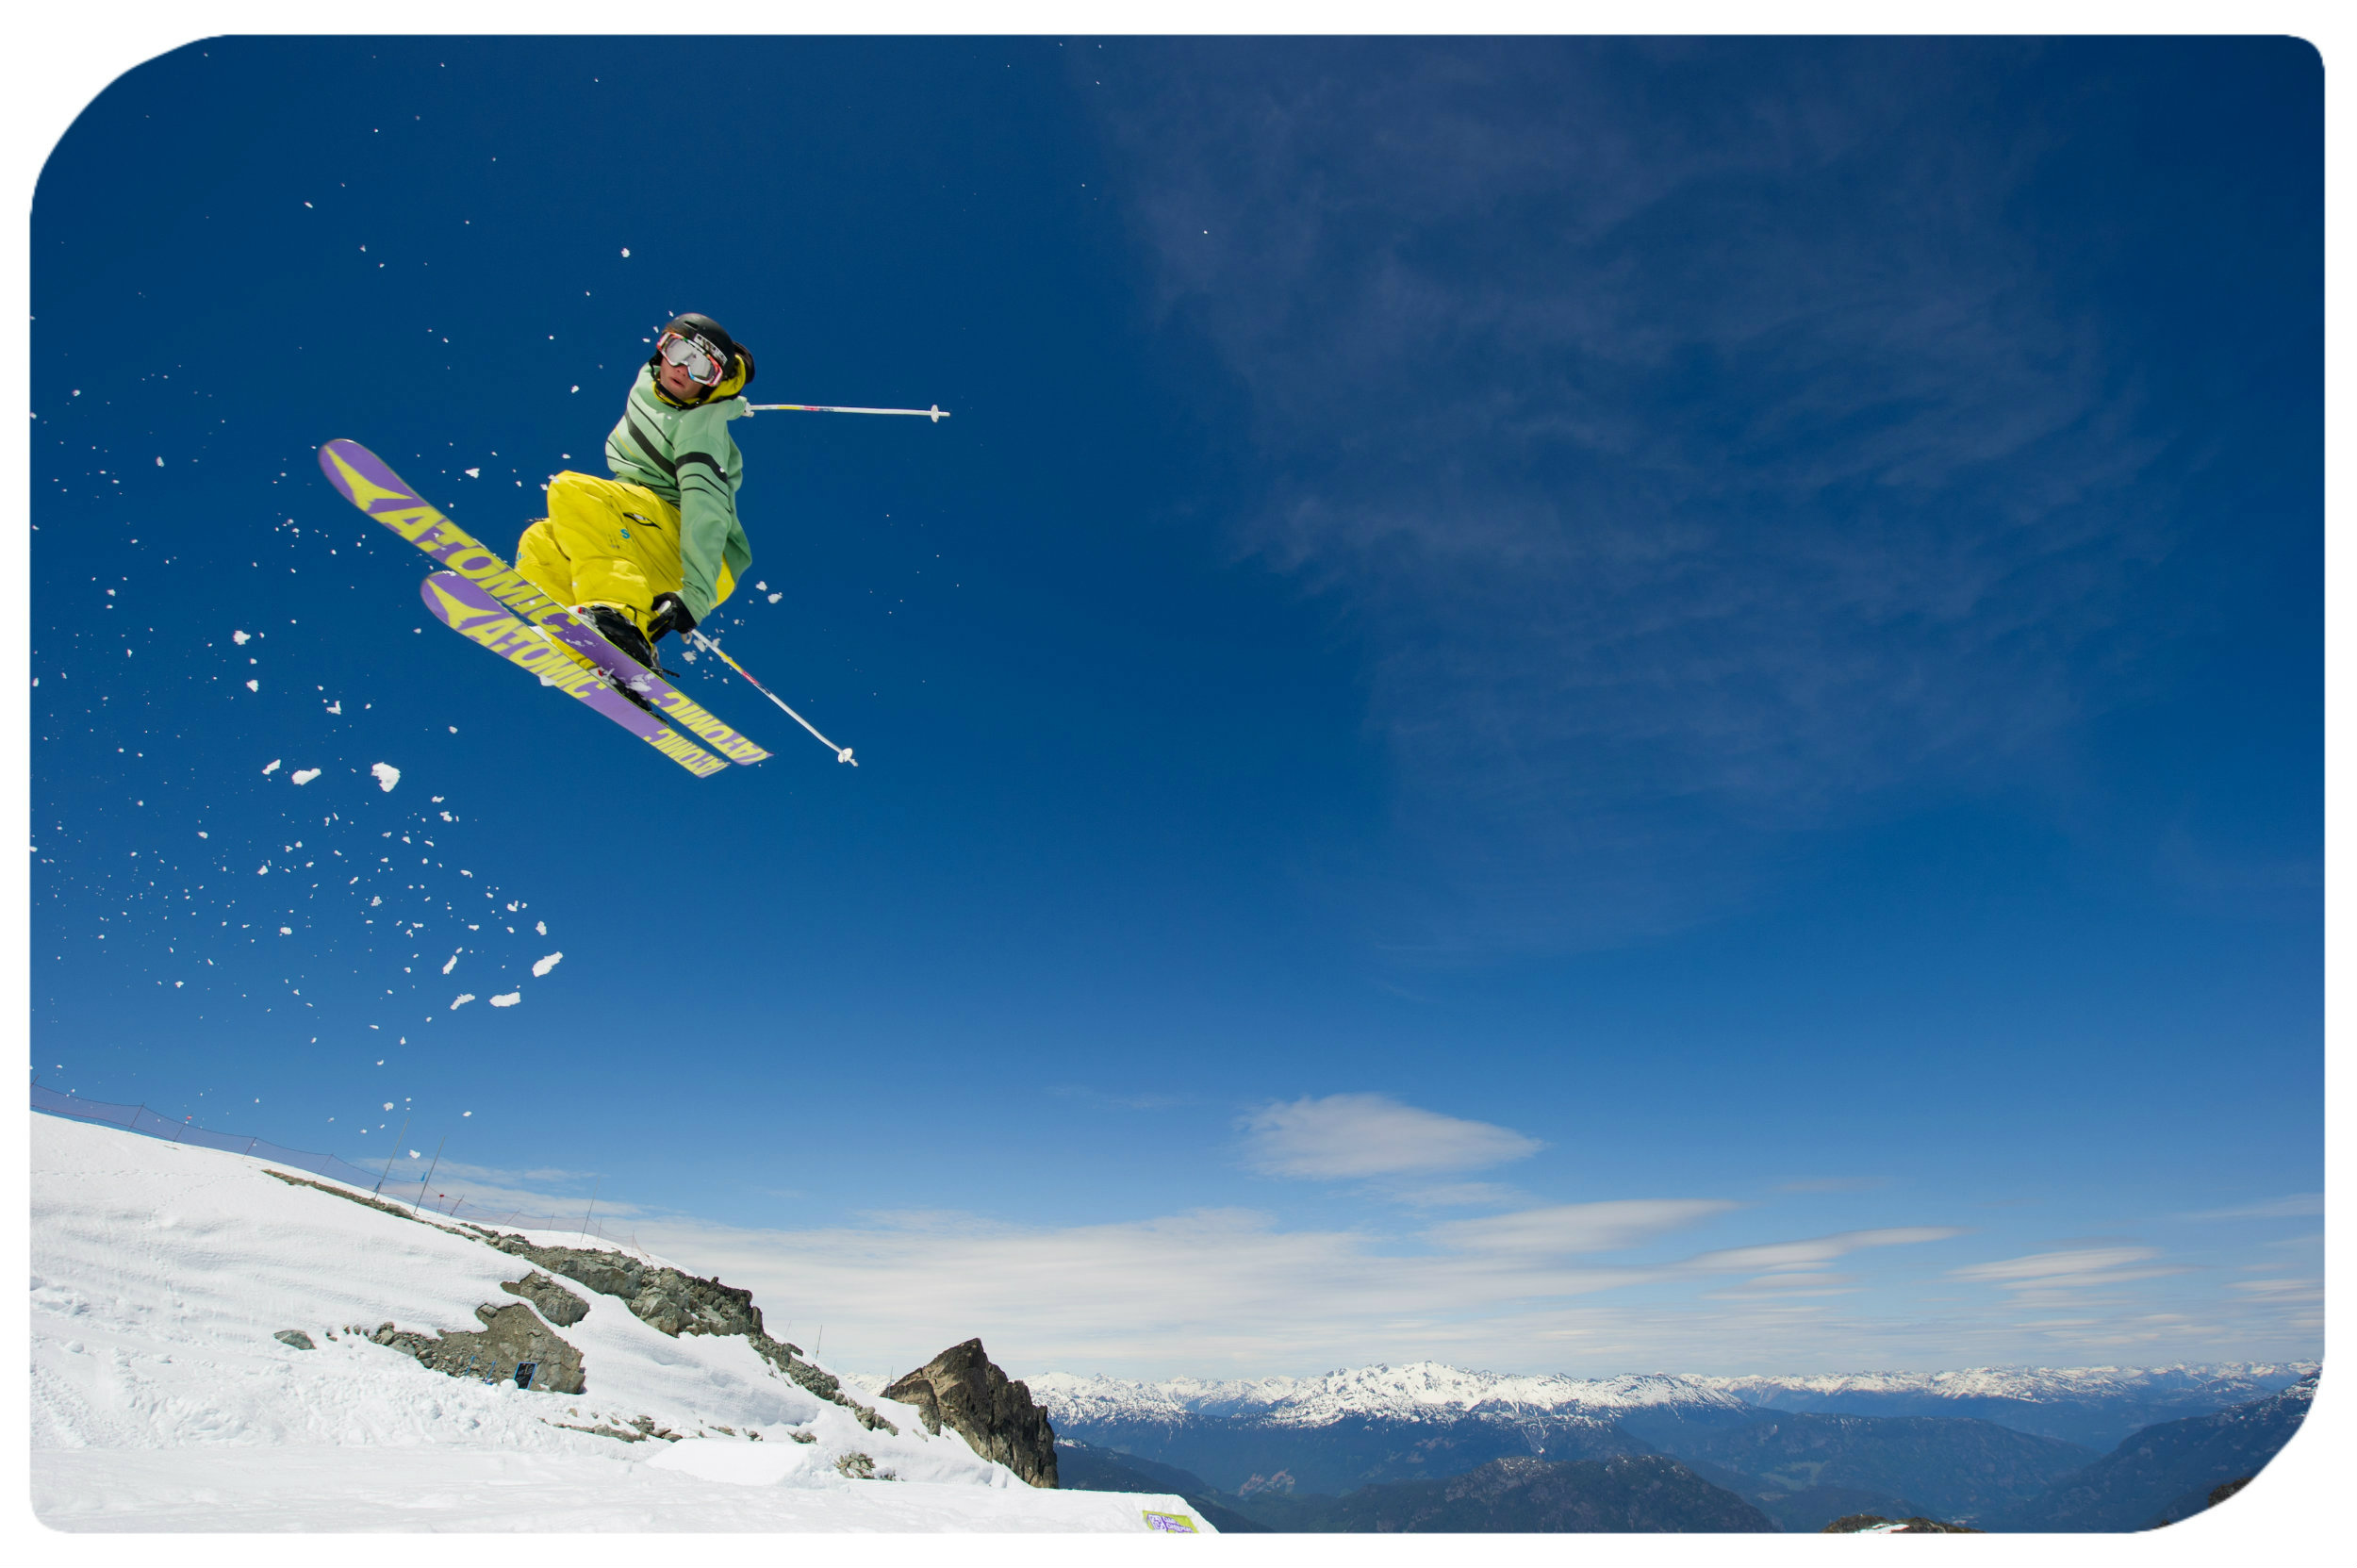 Snow Sports Whistler Blackcomb-Tourism Whistler/Mike Crane